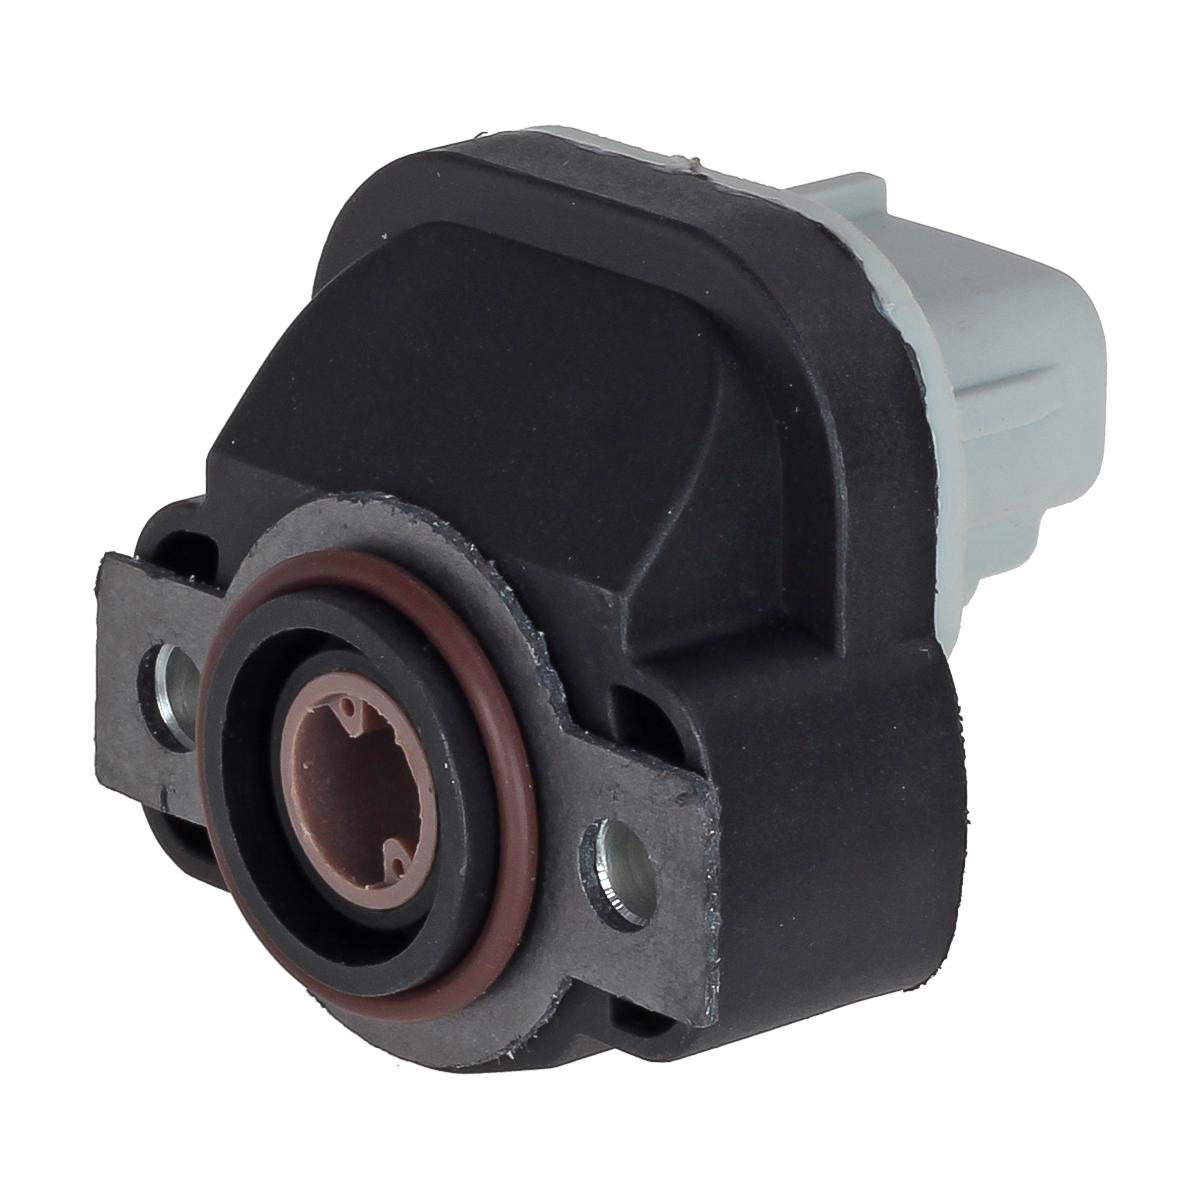 TPS Throttle Position Sensor For 98-2007 Dodge Durango